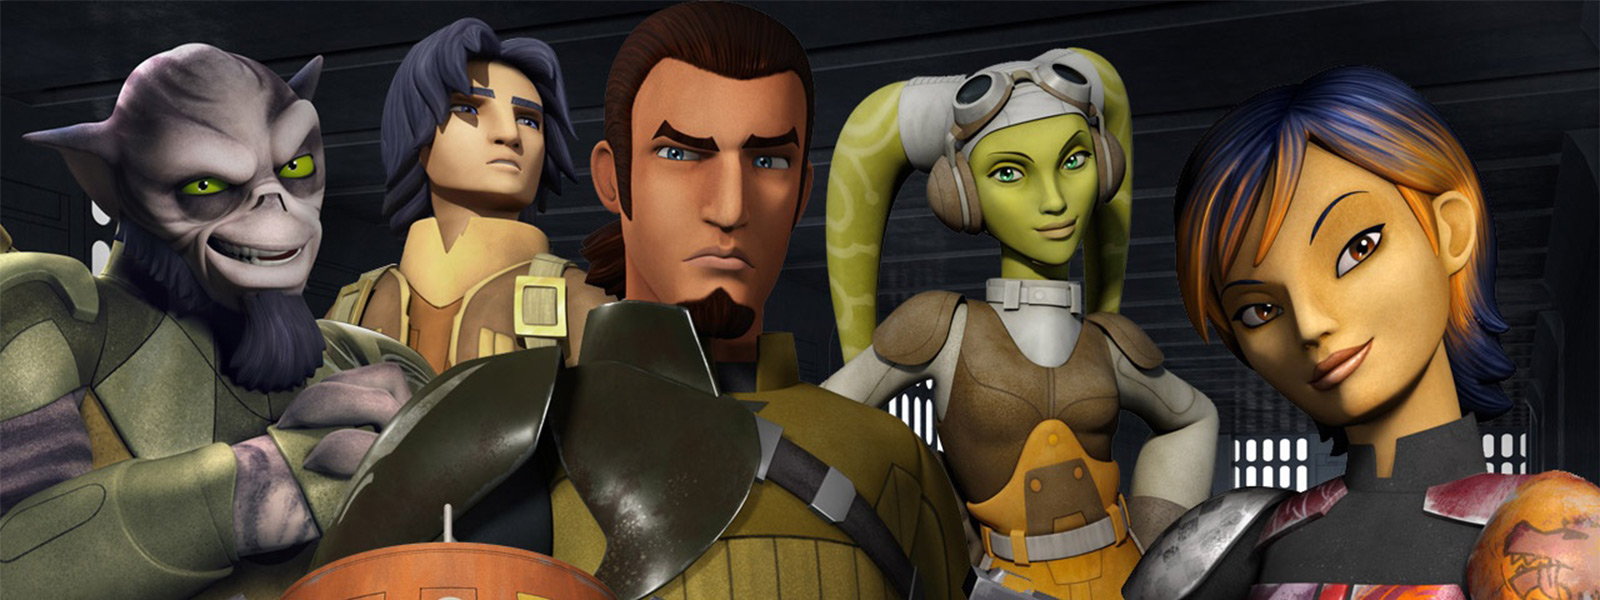 Created by Simon Kinberg Carrie Beck Dave Filoni With Taylor Gray Dave Filoni Vanessa Marshall Freddie Prinze Jr A brave and clever ragtag starship crew